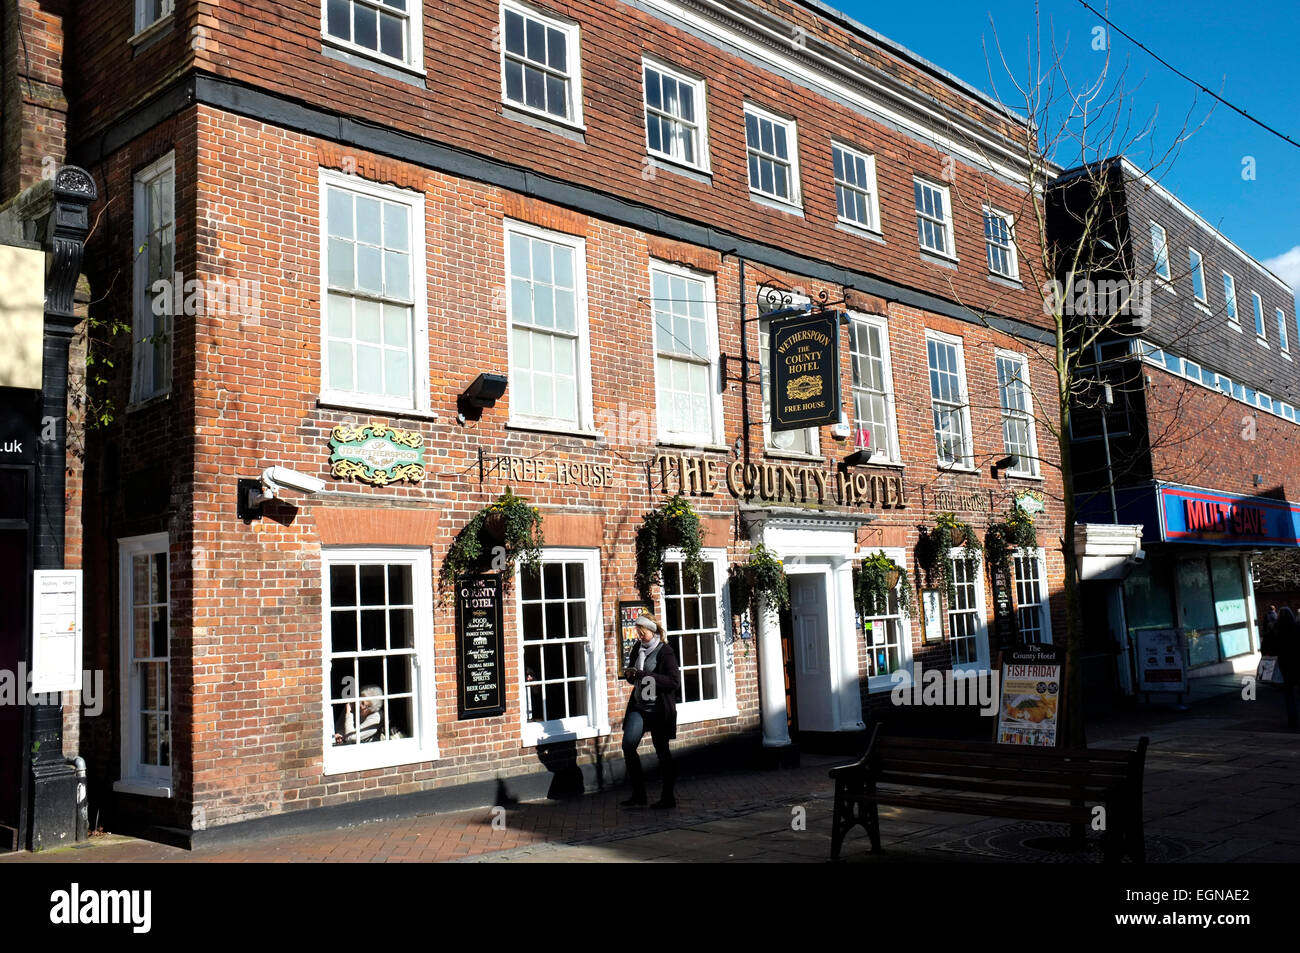 the county hotel in ashford town in the county of kent uk february 2015